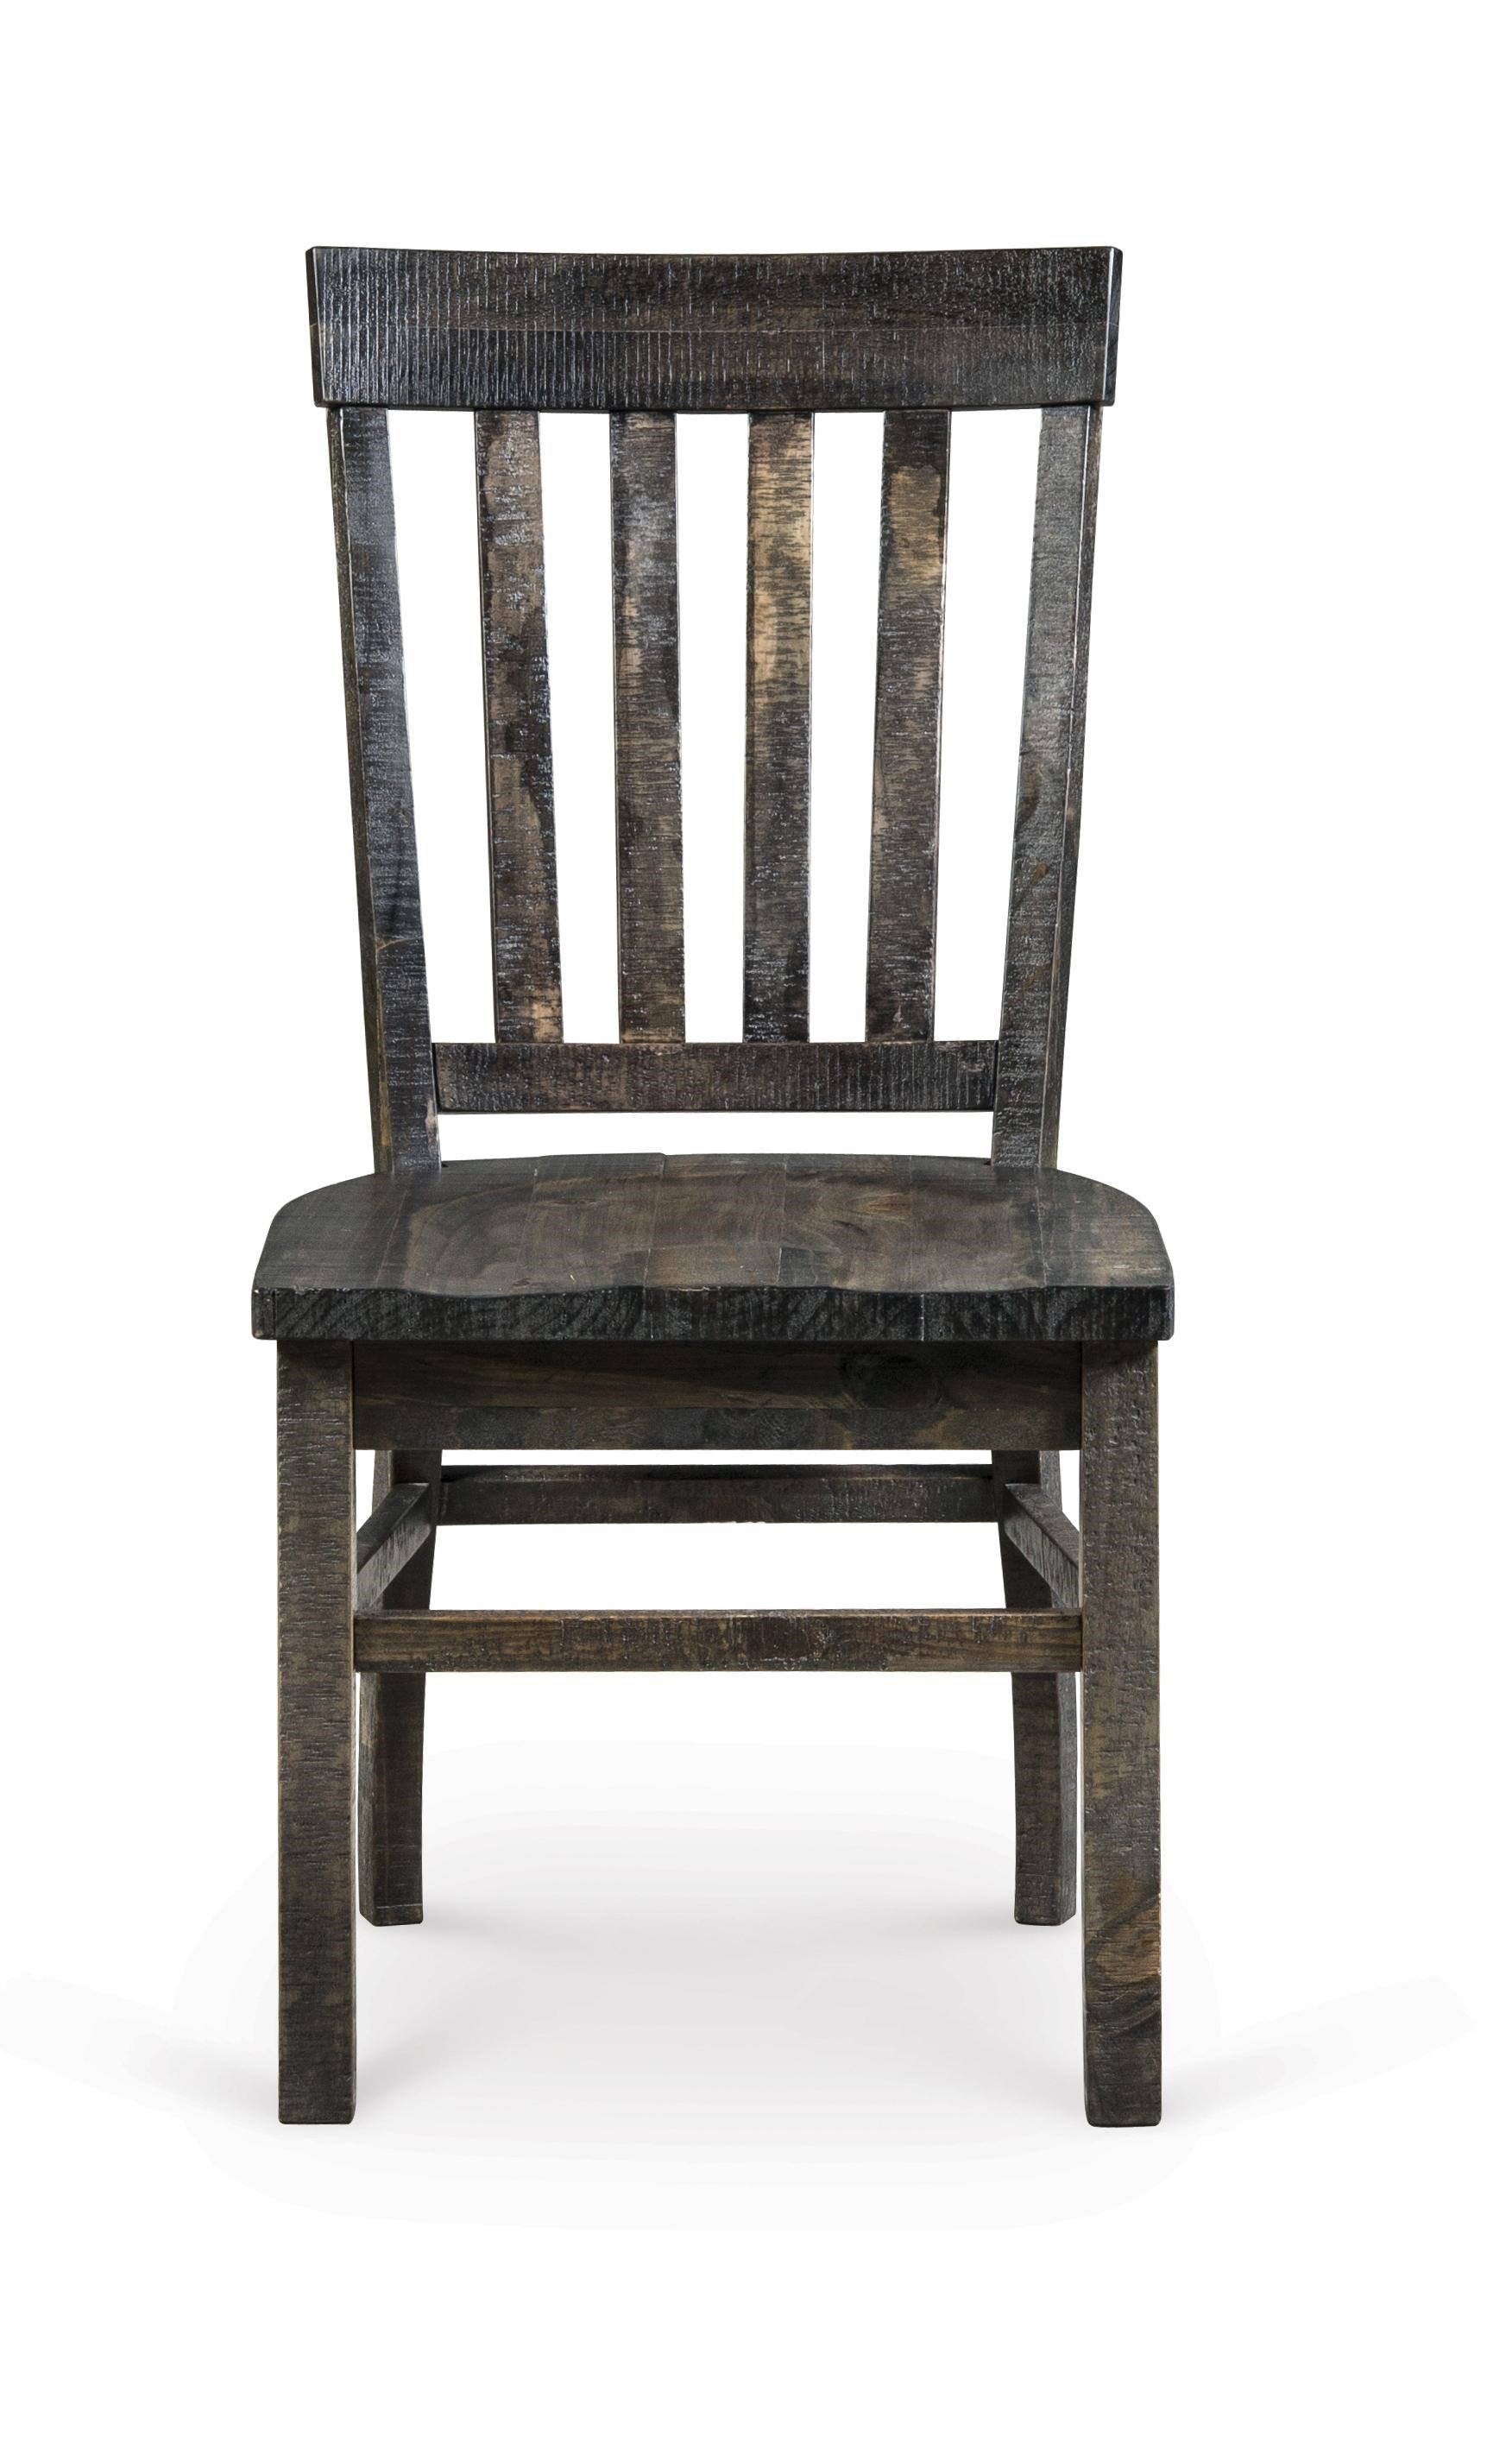 Magnussen Home Turnin Transitional Weathered Gray Dining Side Chair